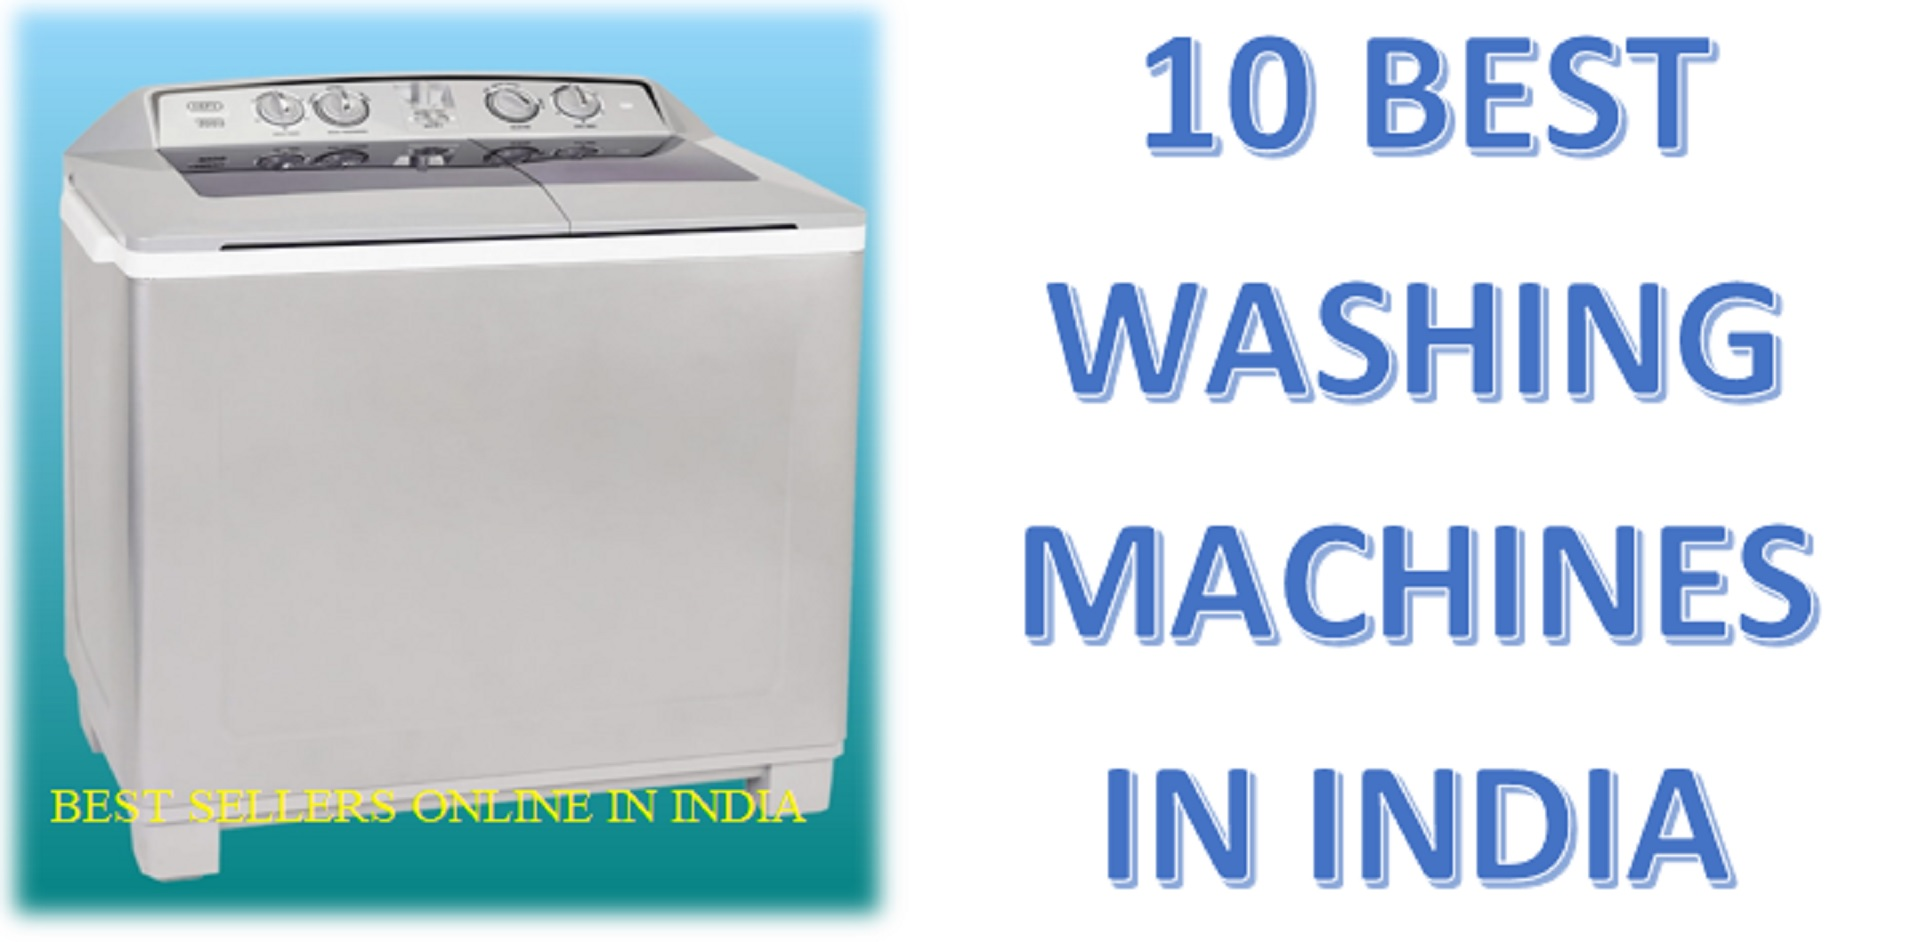 10 Best Washing Machines in India 2020 Reviews & Features